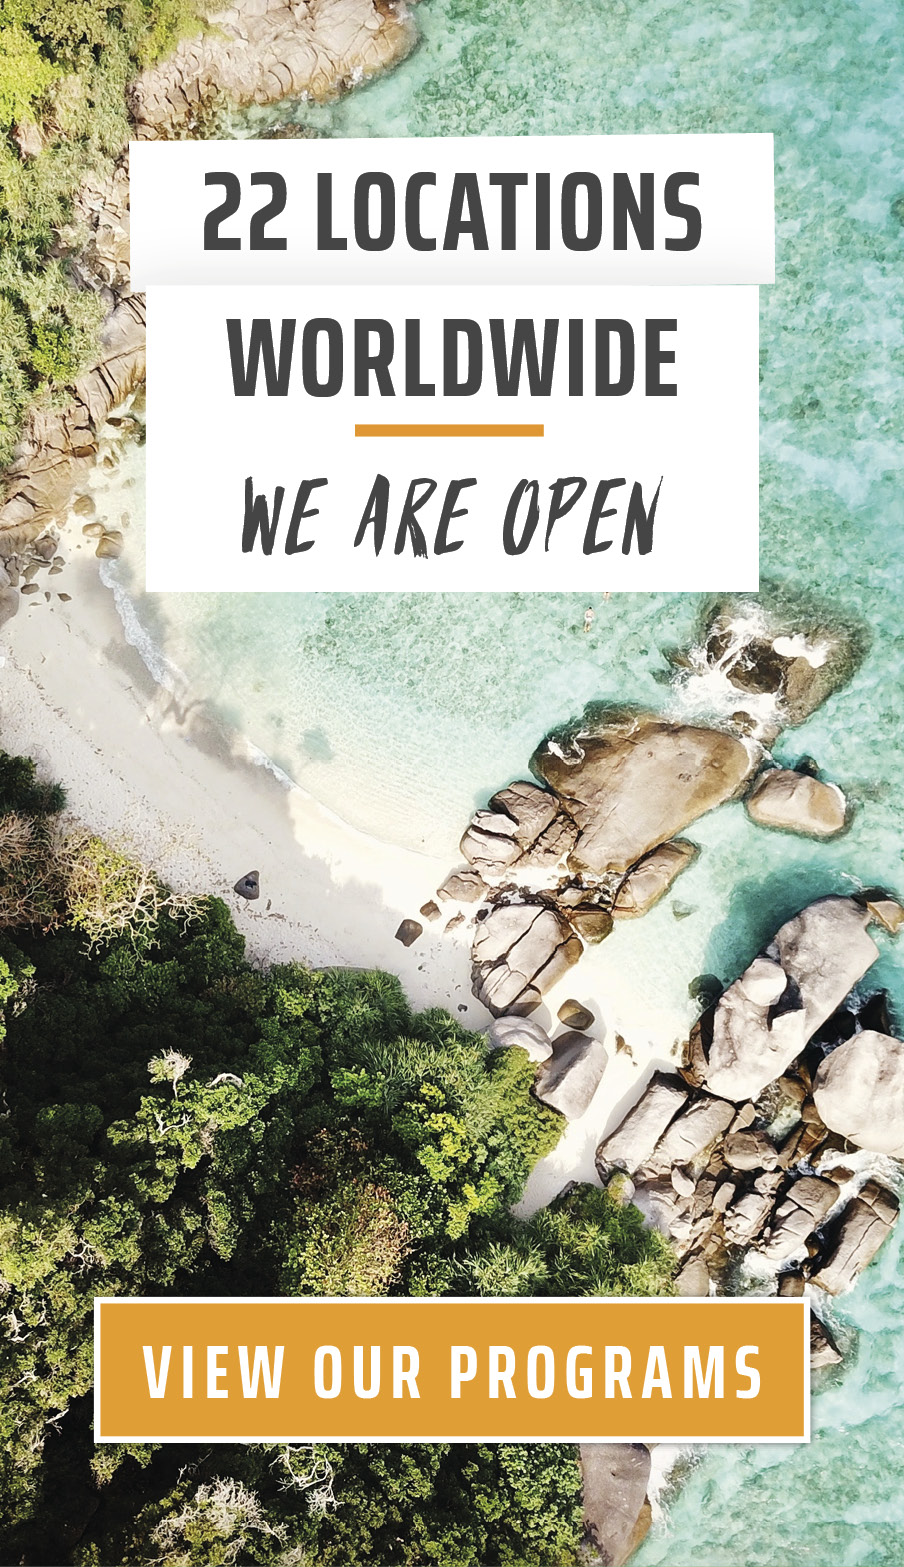 We are open - blogs